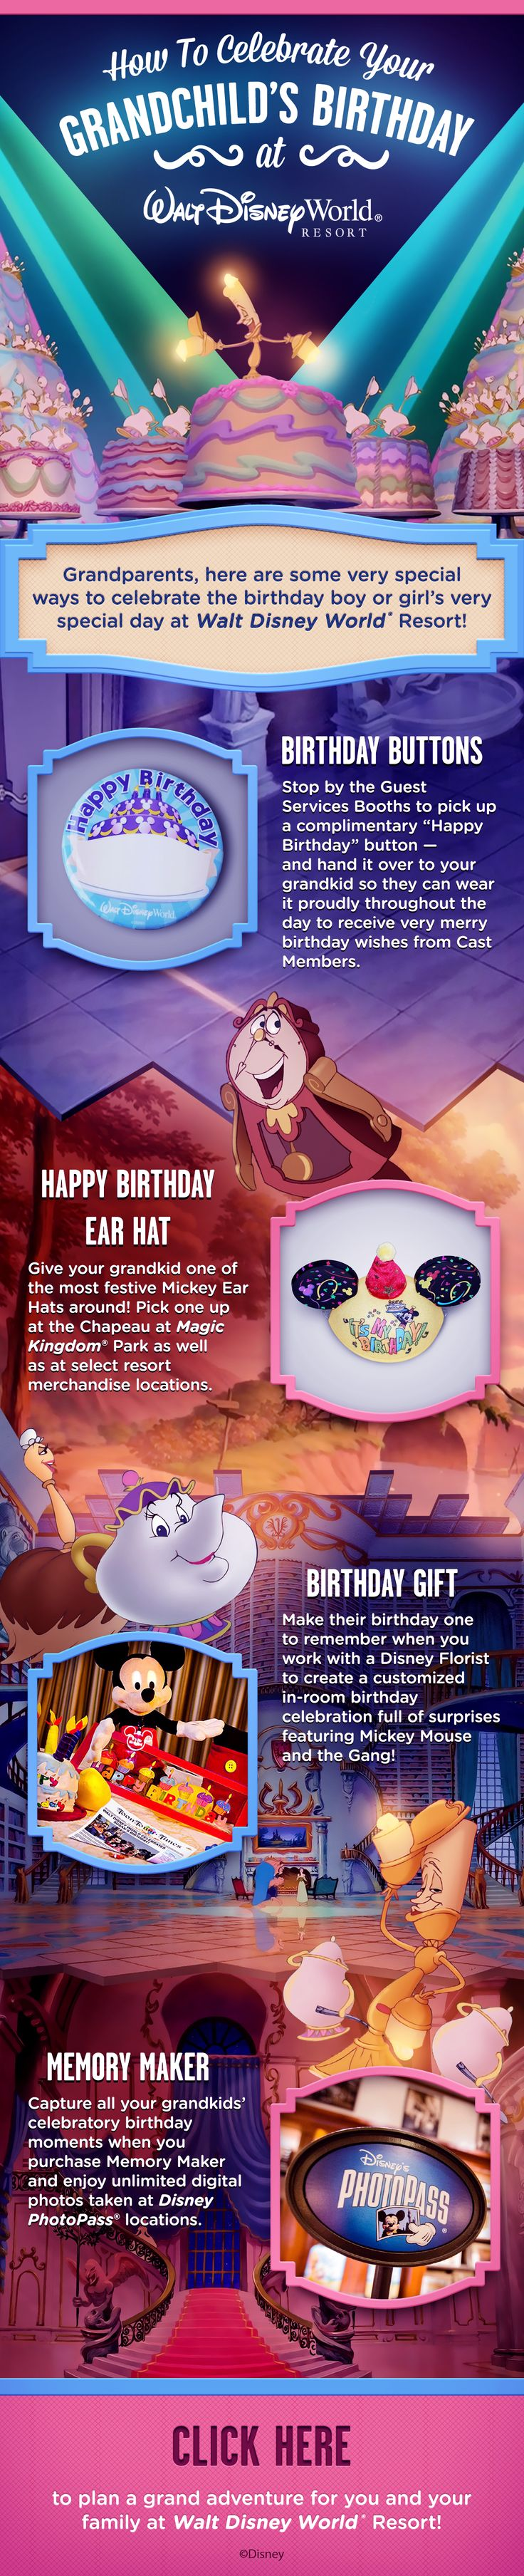 Make you Grandchild's birthday extra special during your Walt Disney World vacation with these special Disney birthday touches like Mickey Birthday Ears, Memory Maker from PhotoPass, and a birthday button!